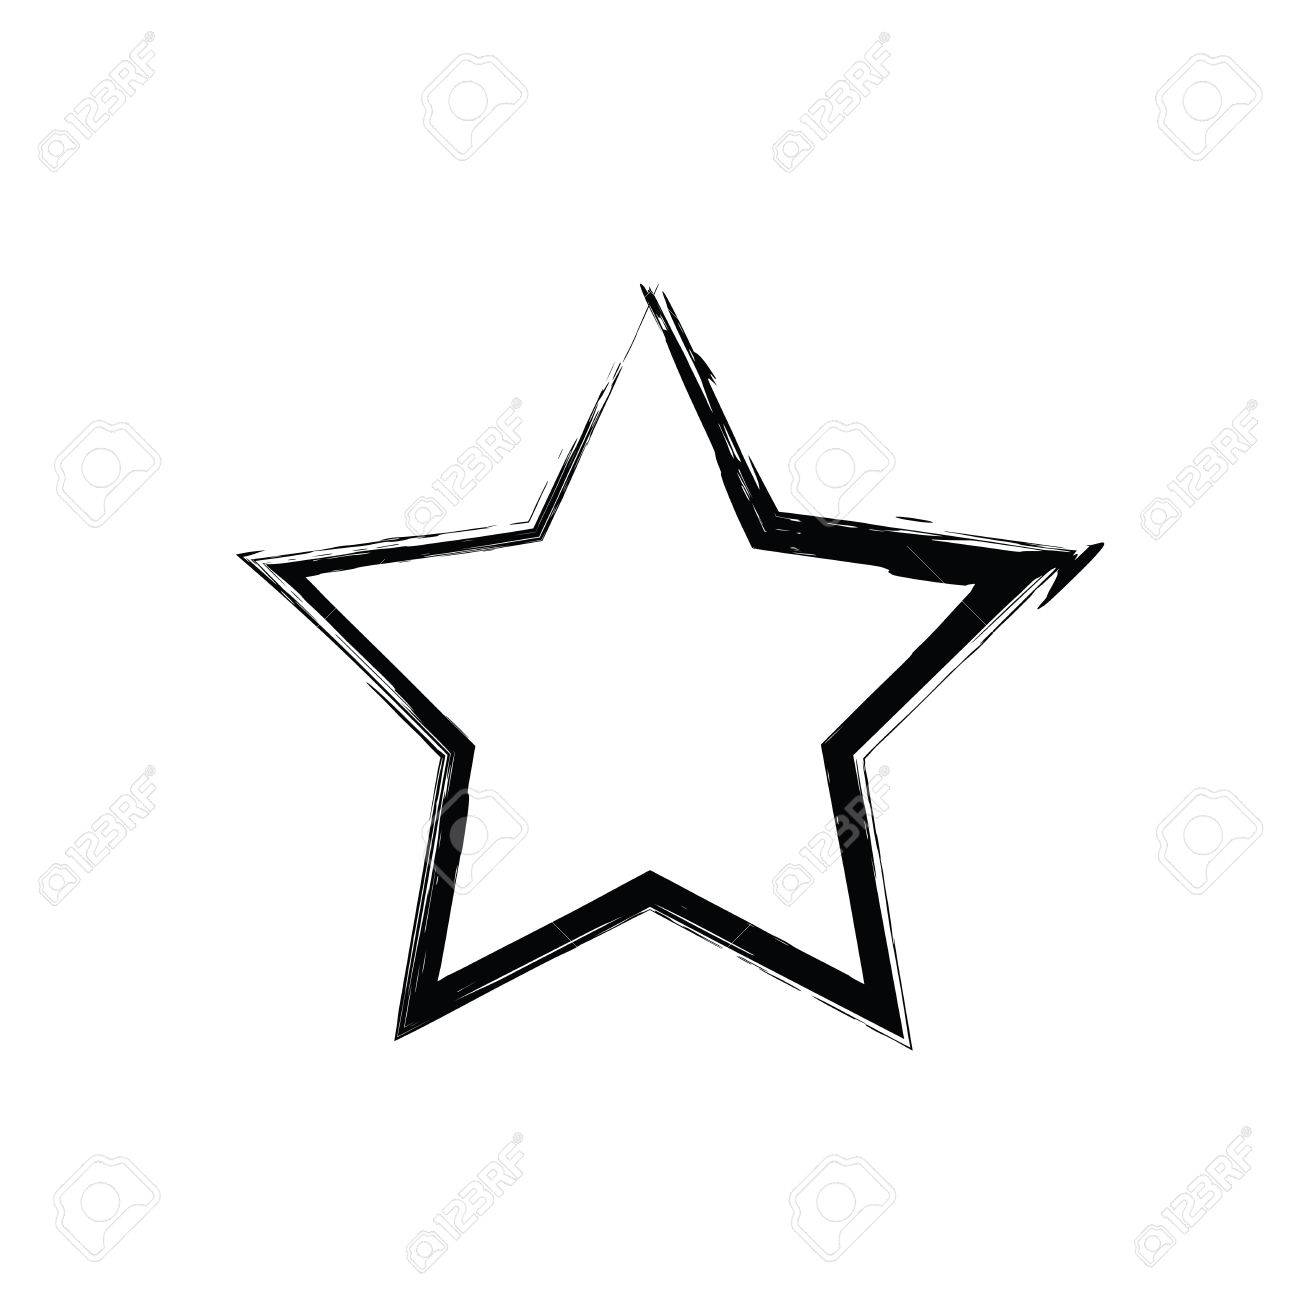 1300x1300 Grunge Star Vector. Five Pointed Star. Vector Star Symbol.